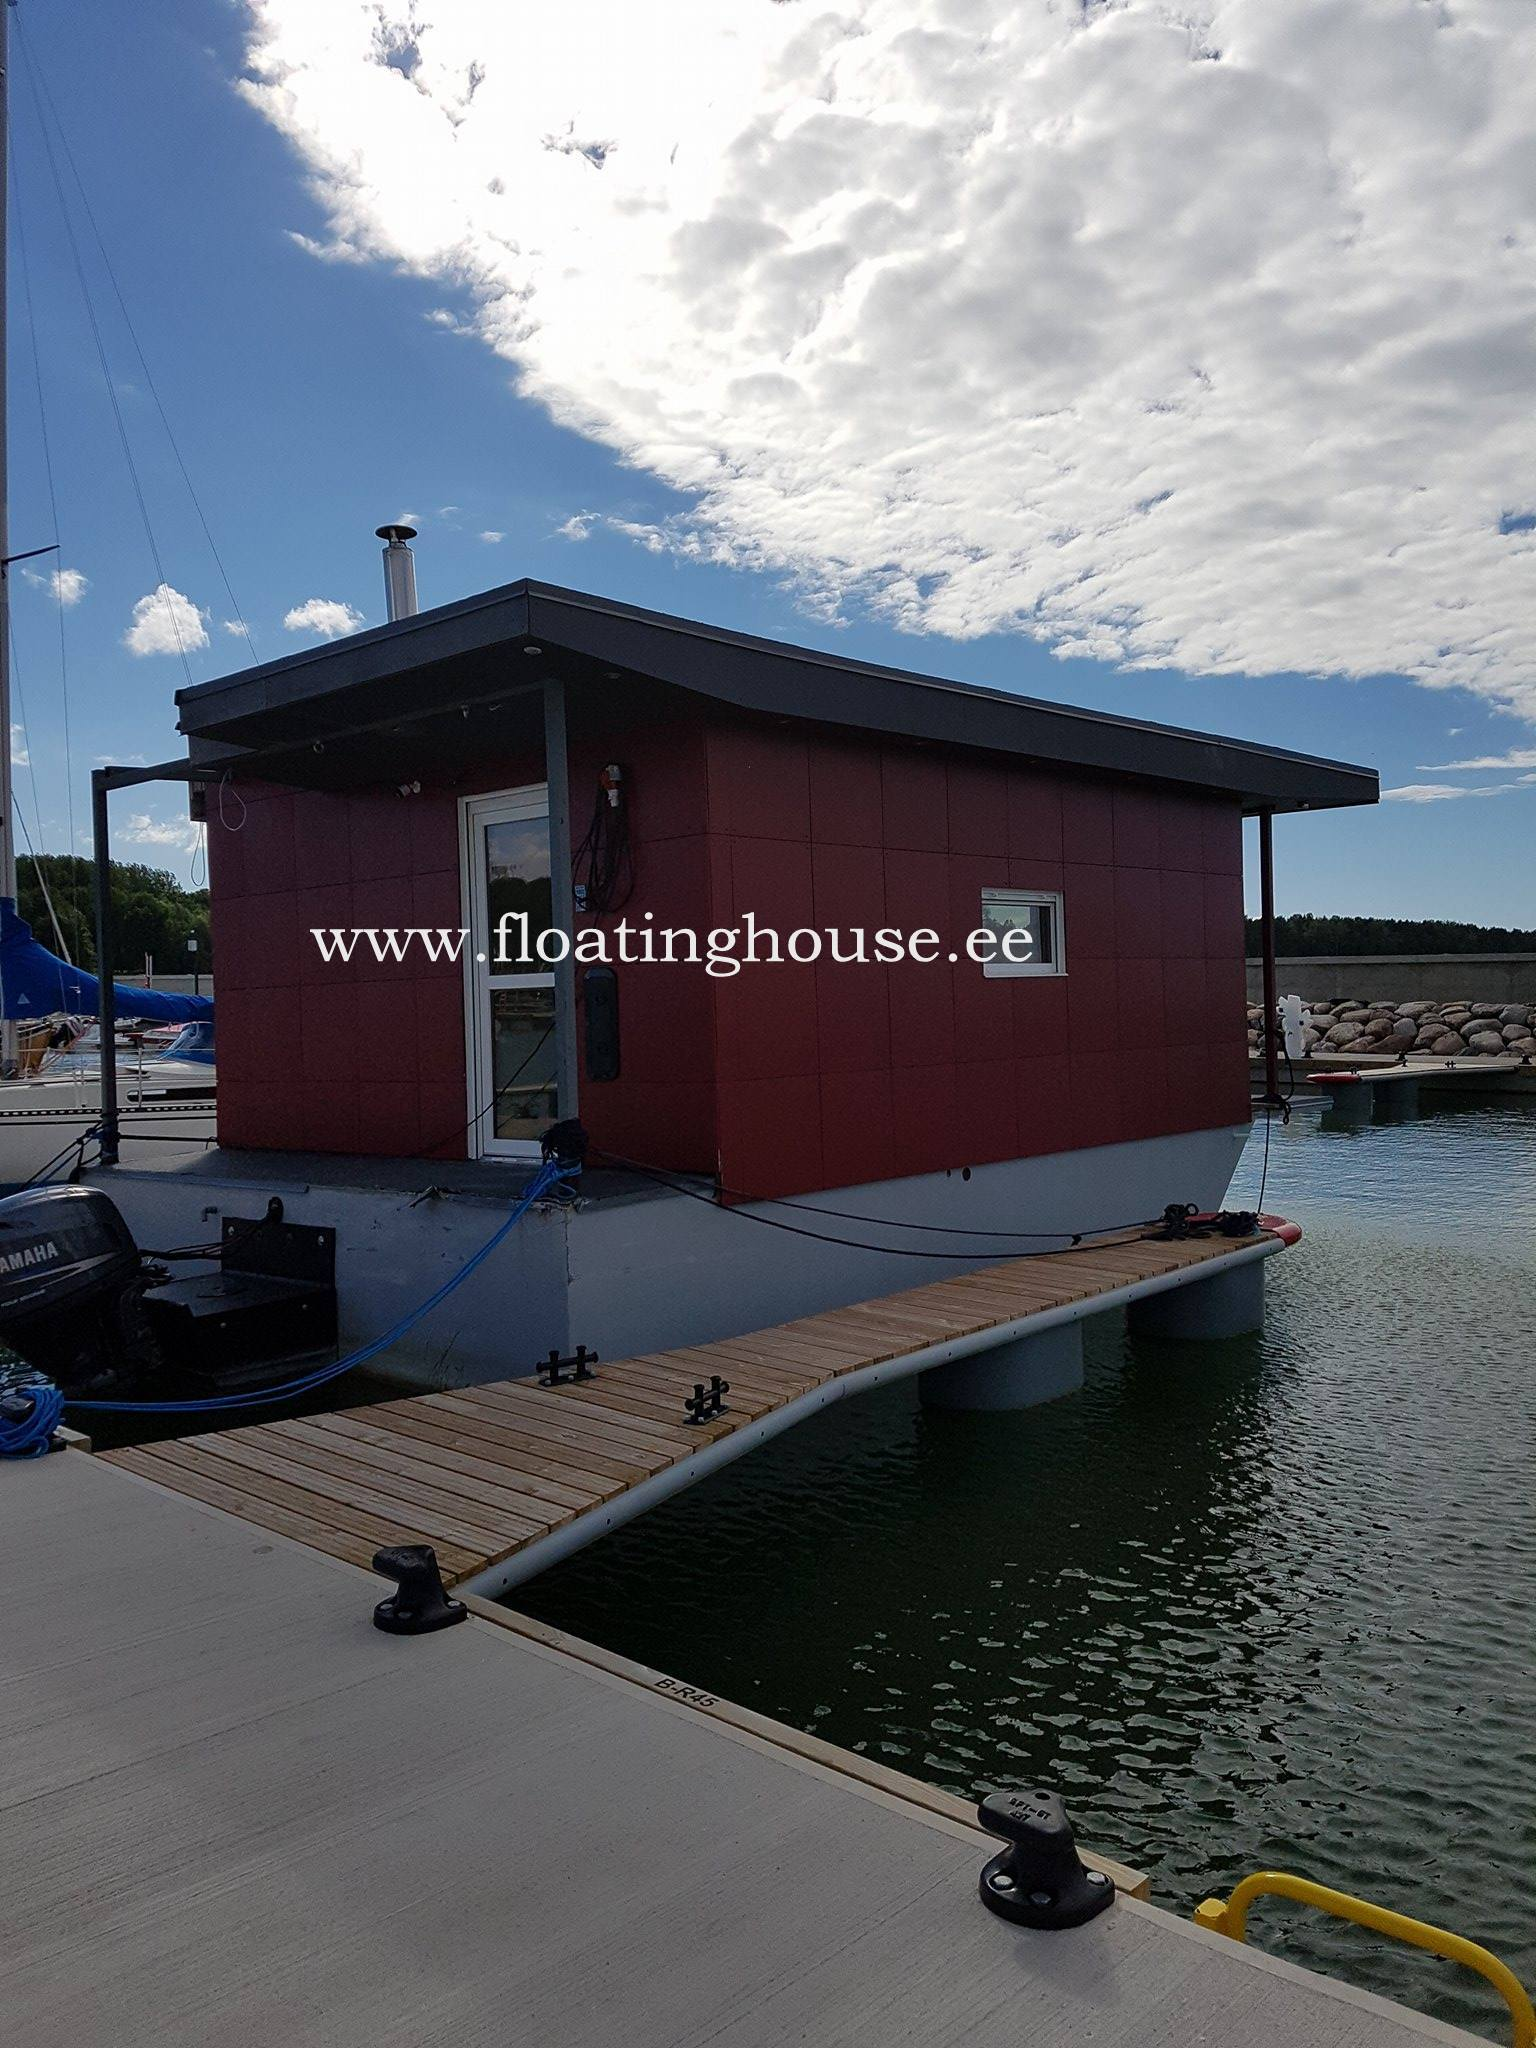 Floatinghouse.ee, floating houses, Made in EU, Estonia